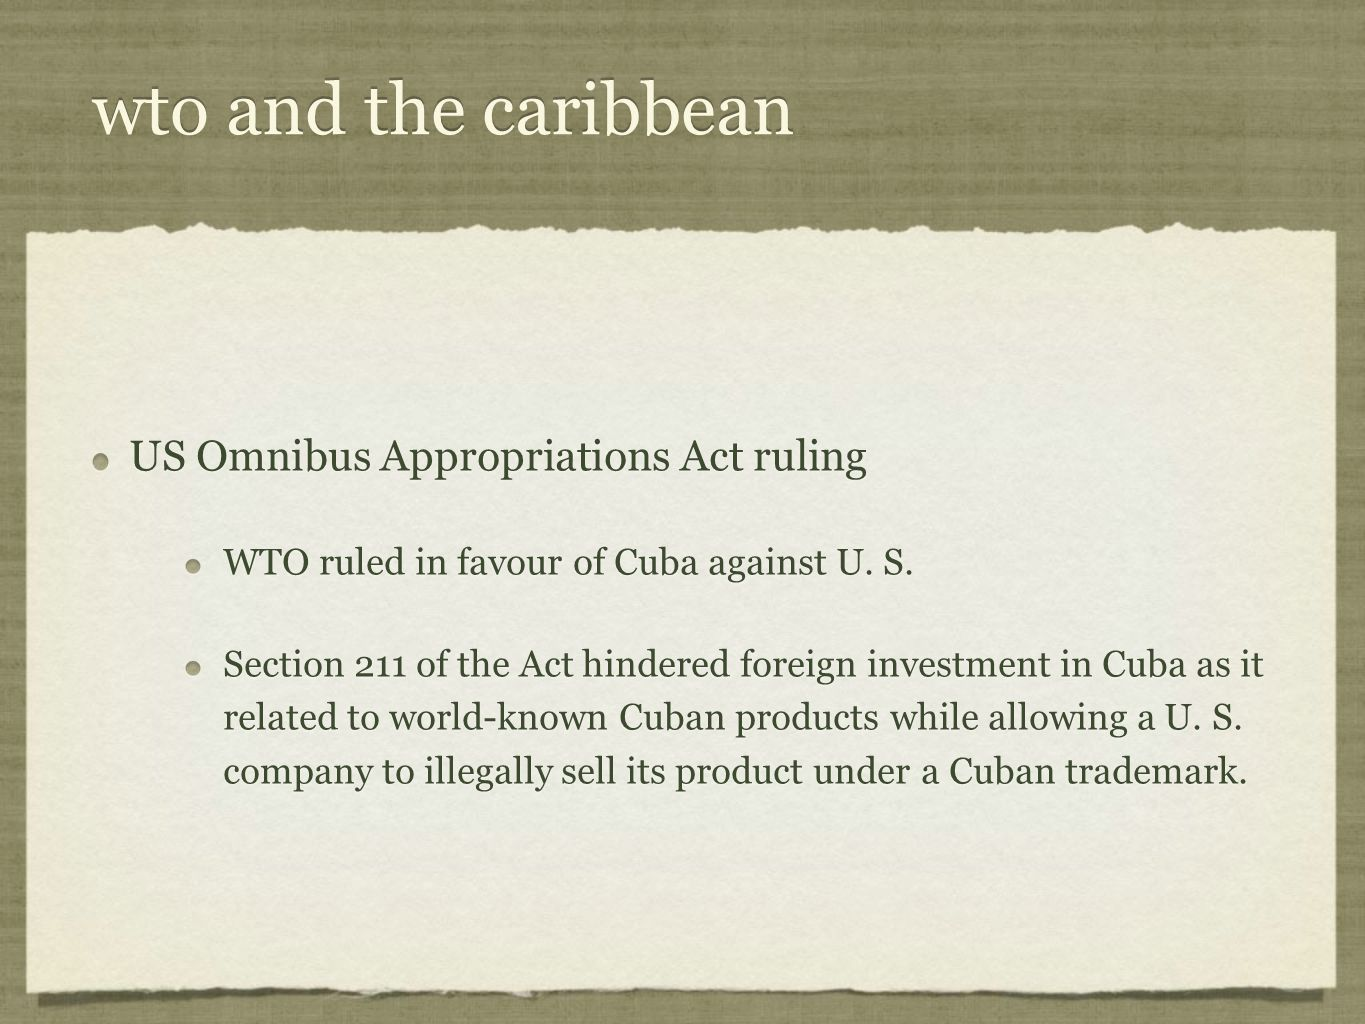 wto and the caribbean US Omnibus Appropriations Act ruling